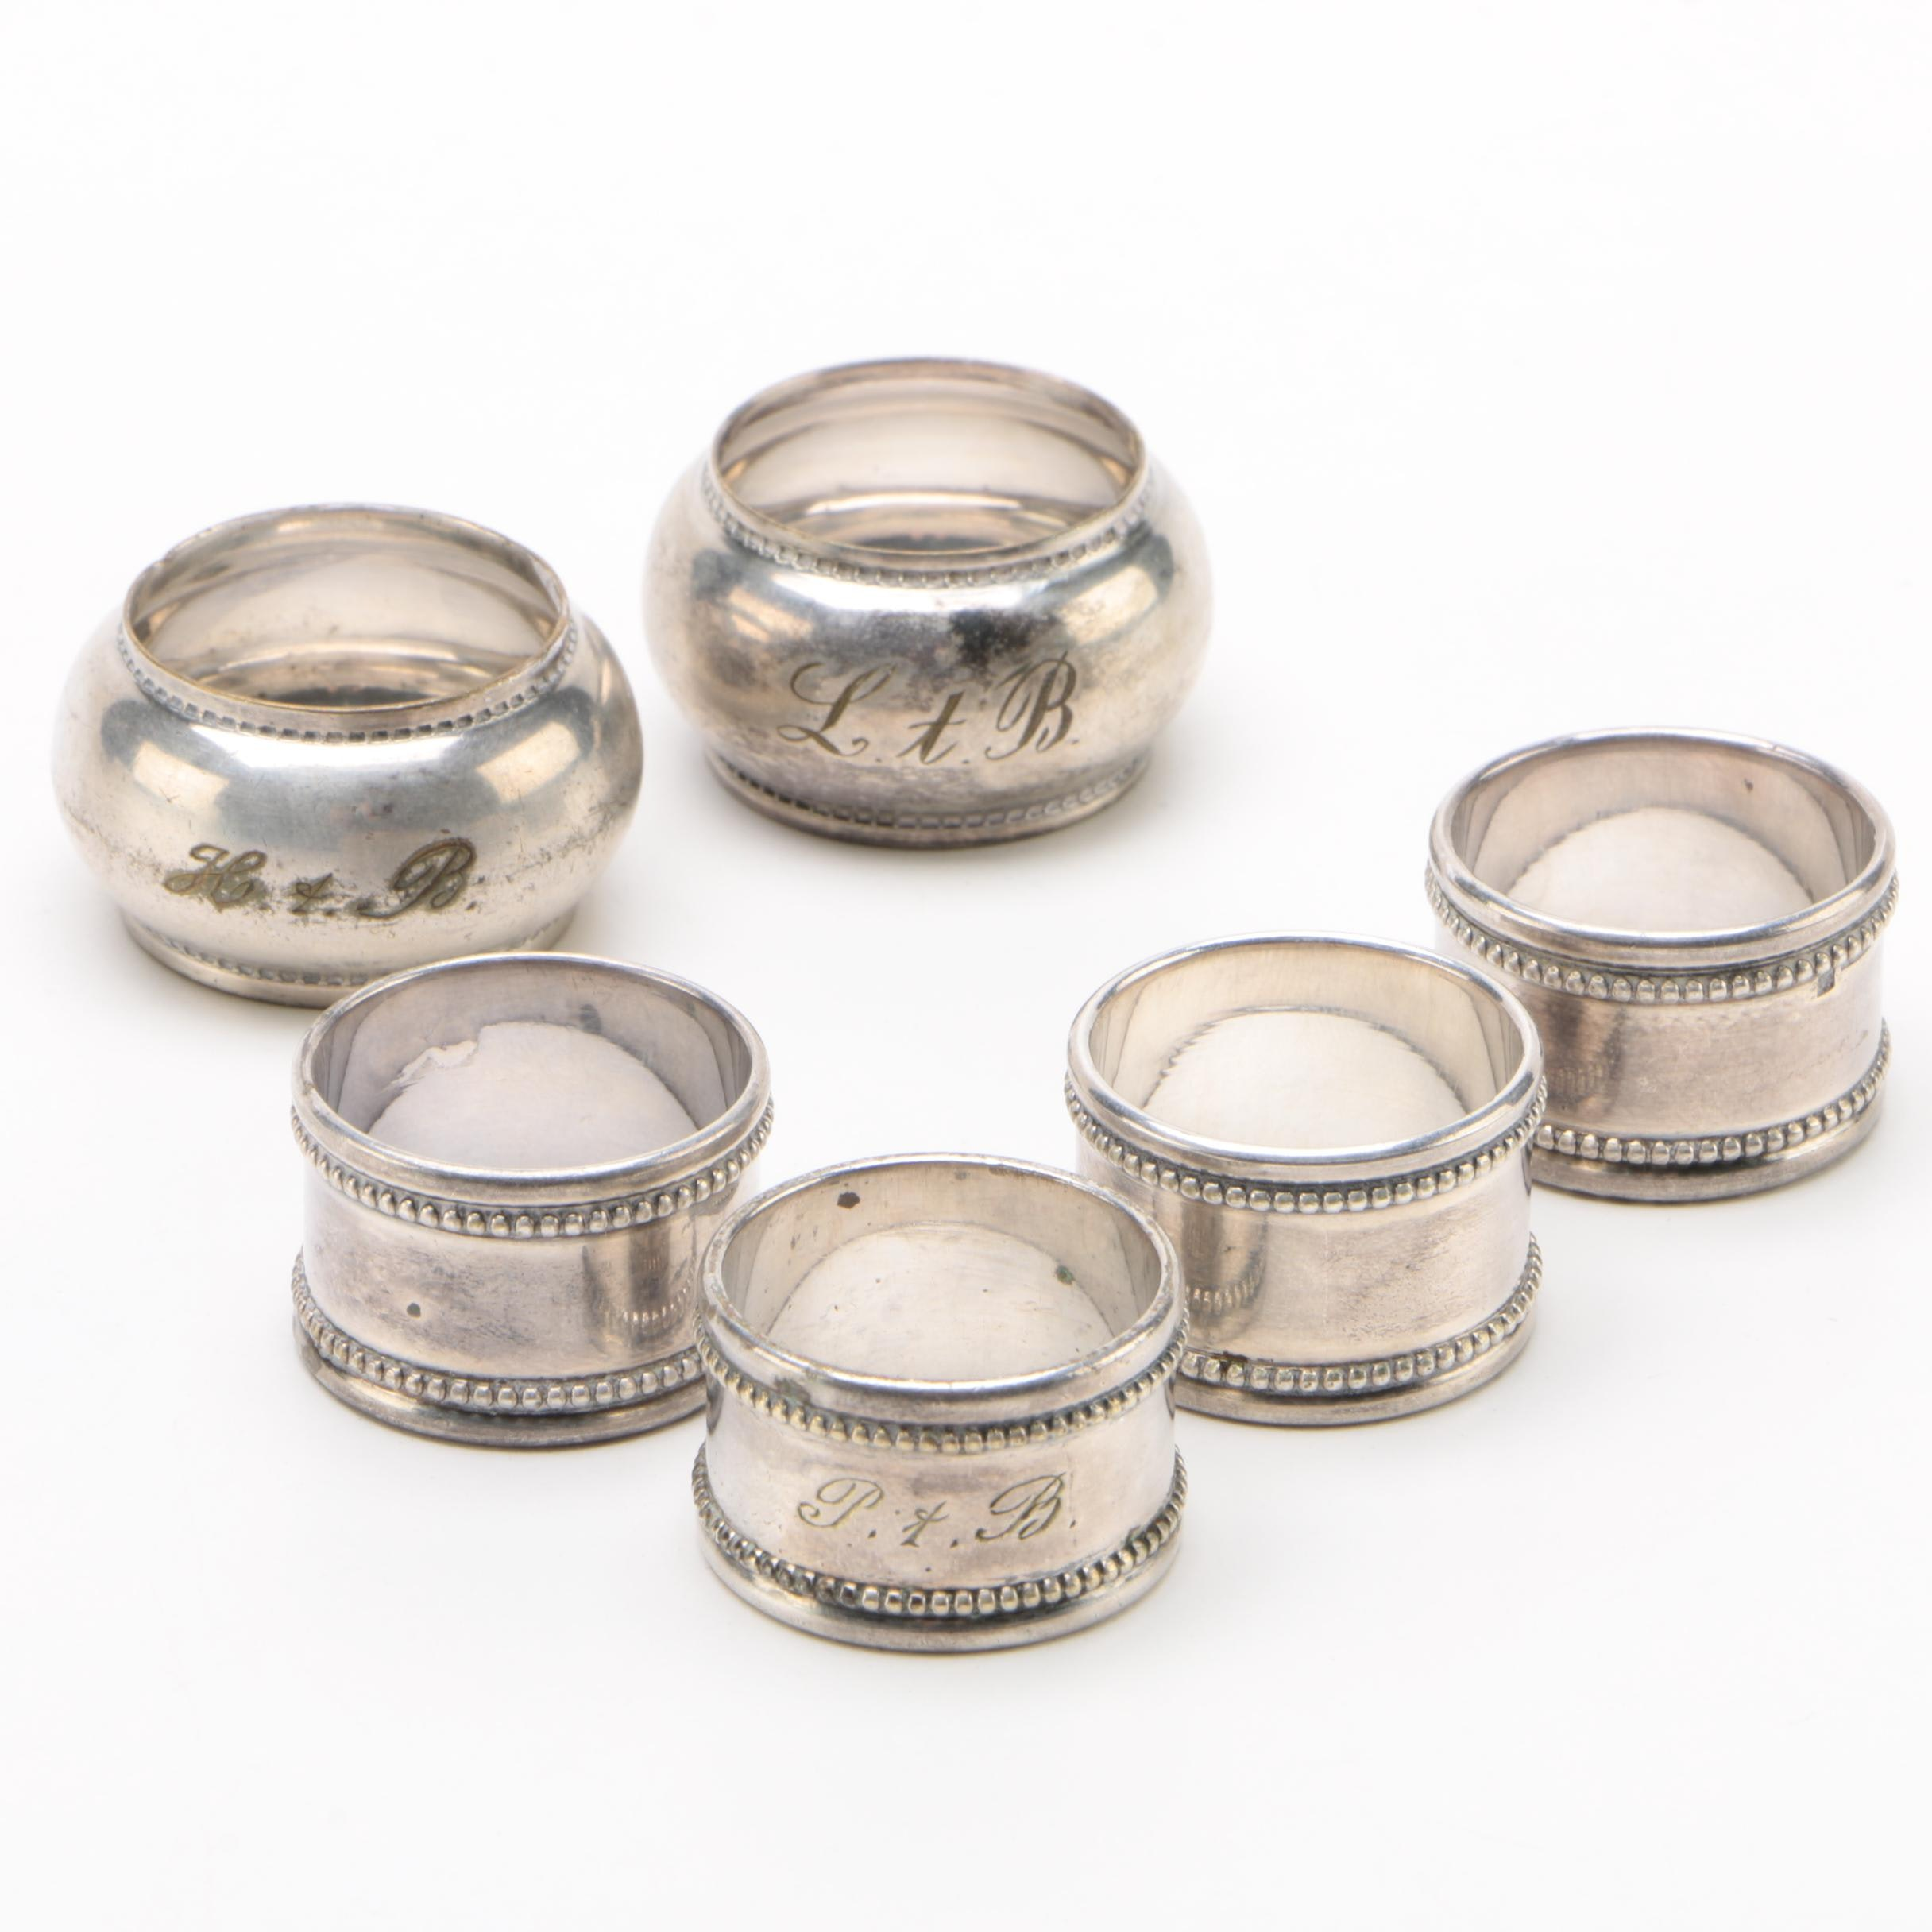 Christofle Silver Plate Napkin Rings with Others